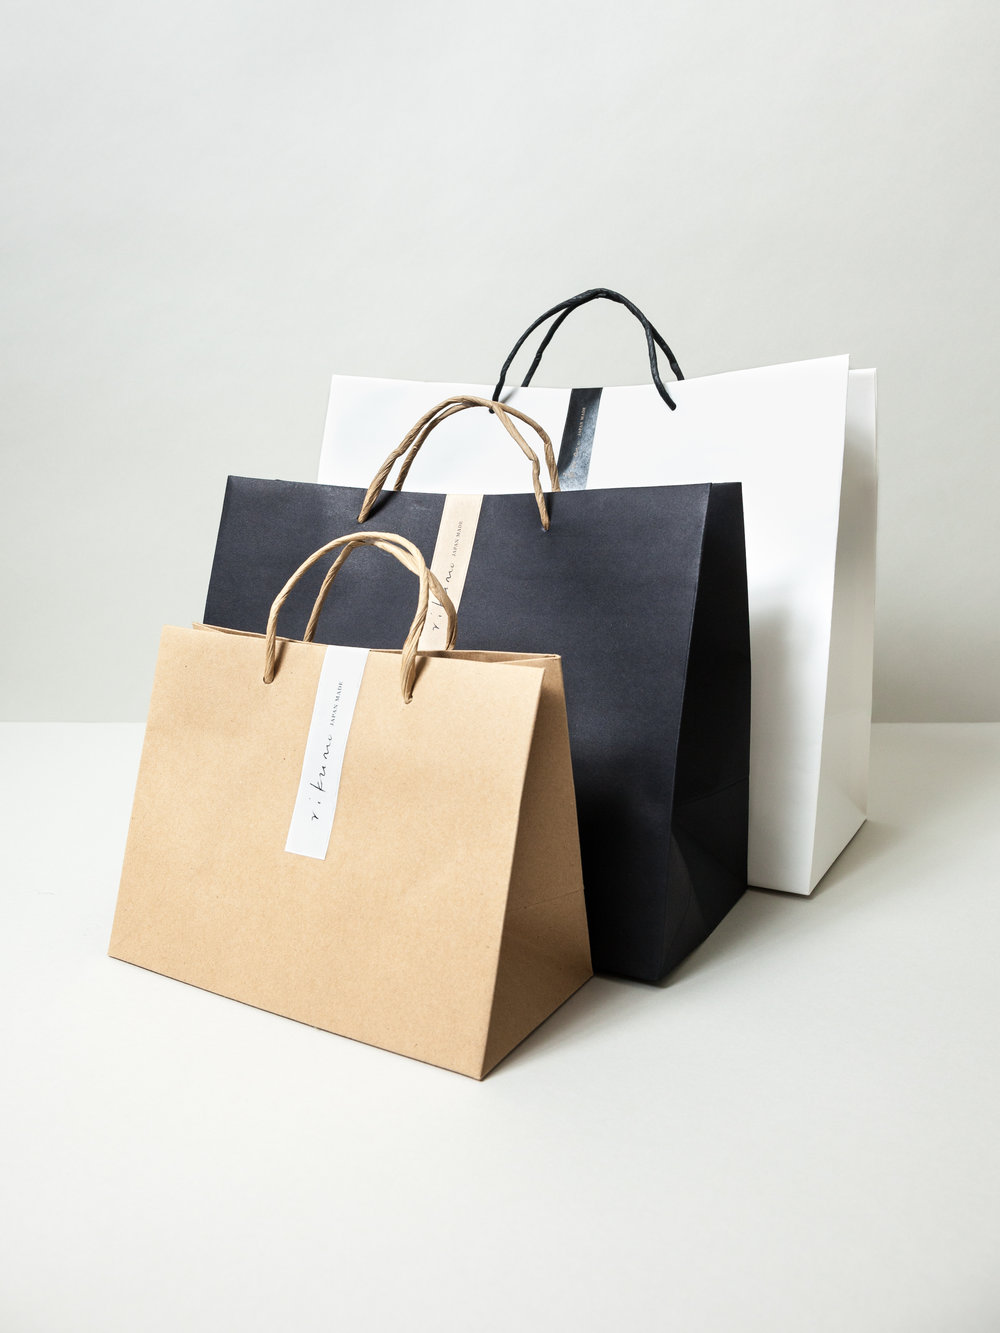 Our brand new Fukubukuro bags come in six different sizes and three different bag styles.